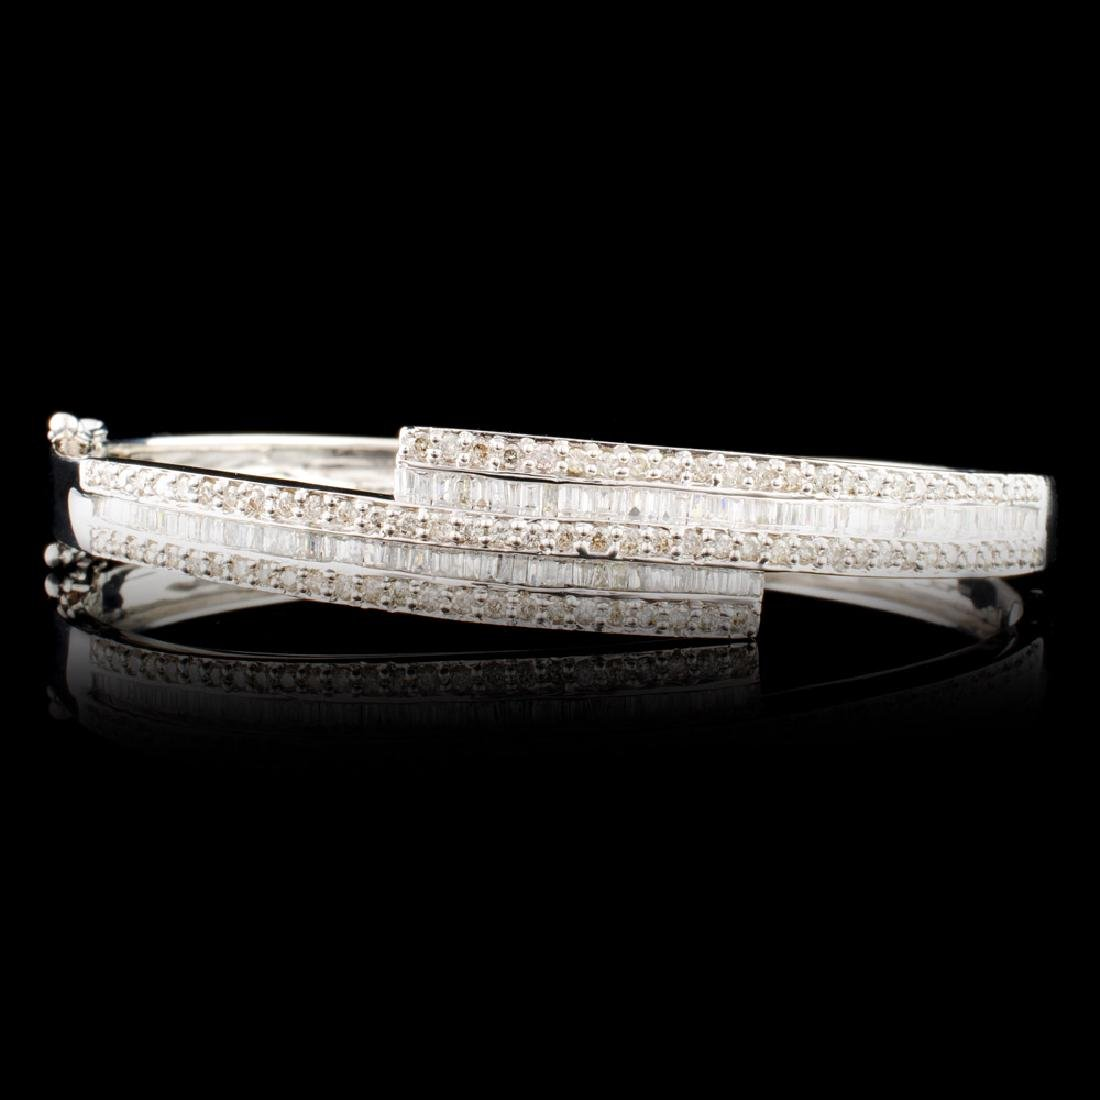 18K Gold 2.15ctw Diamond Bangle